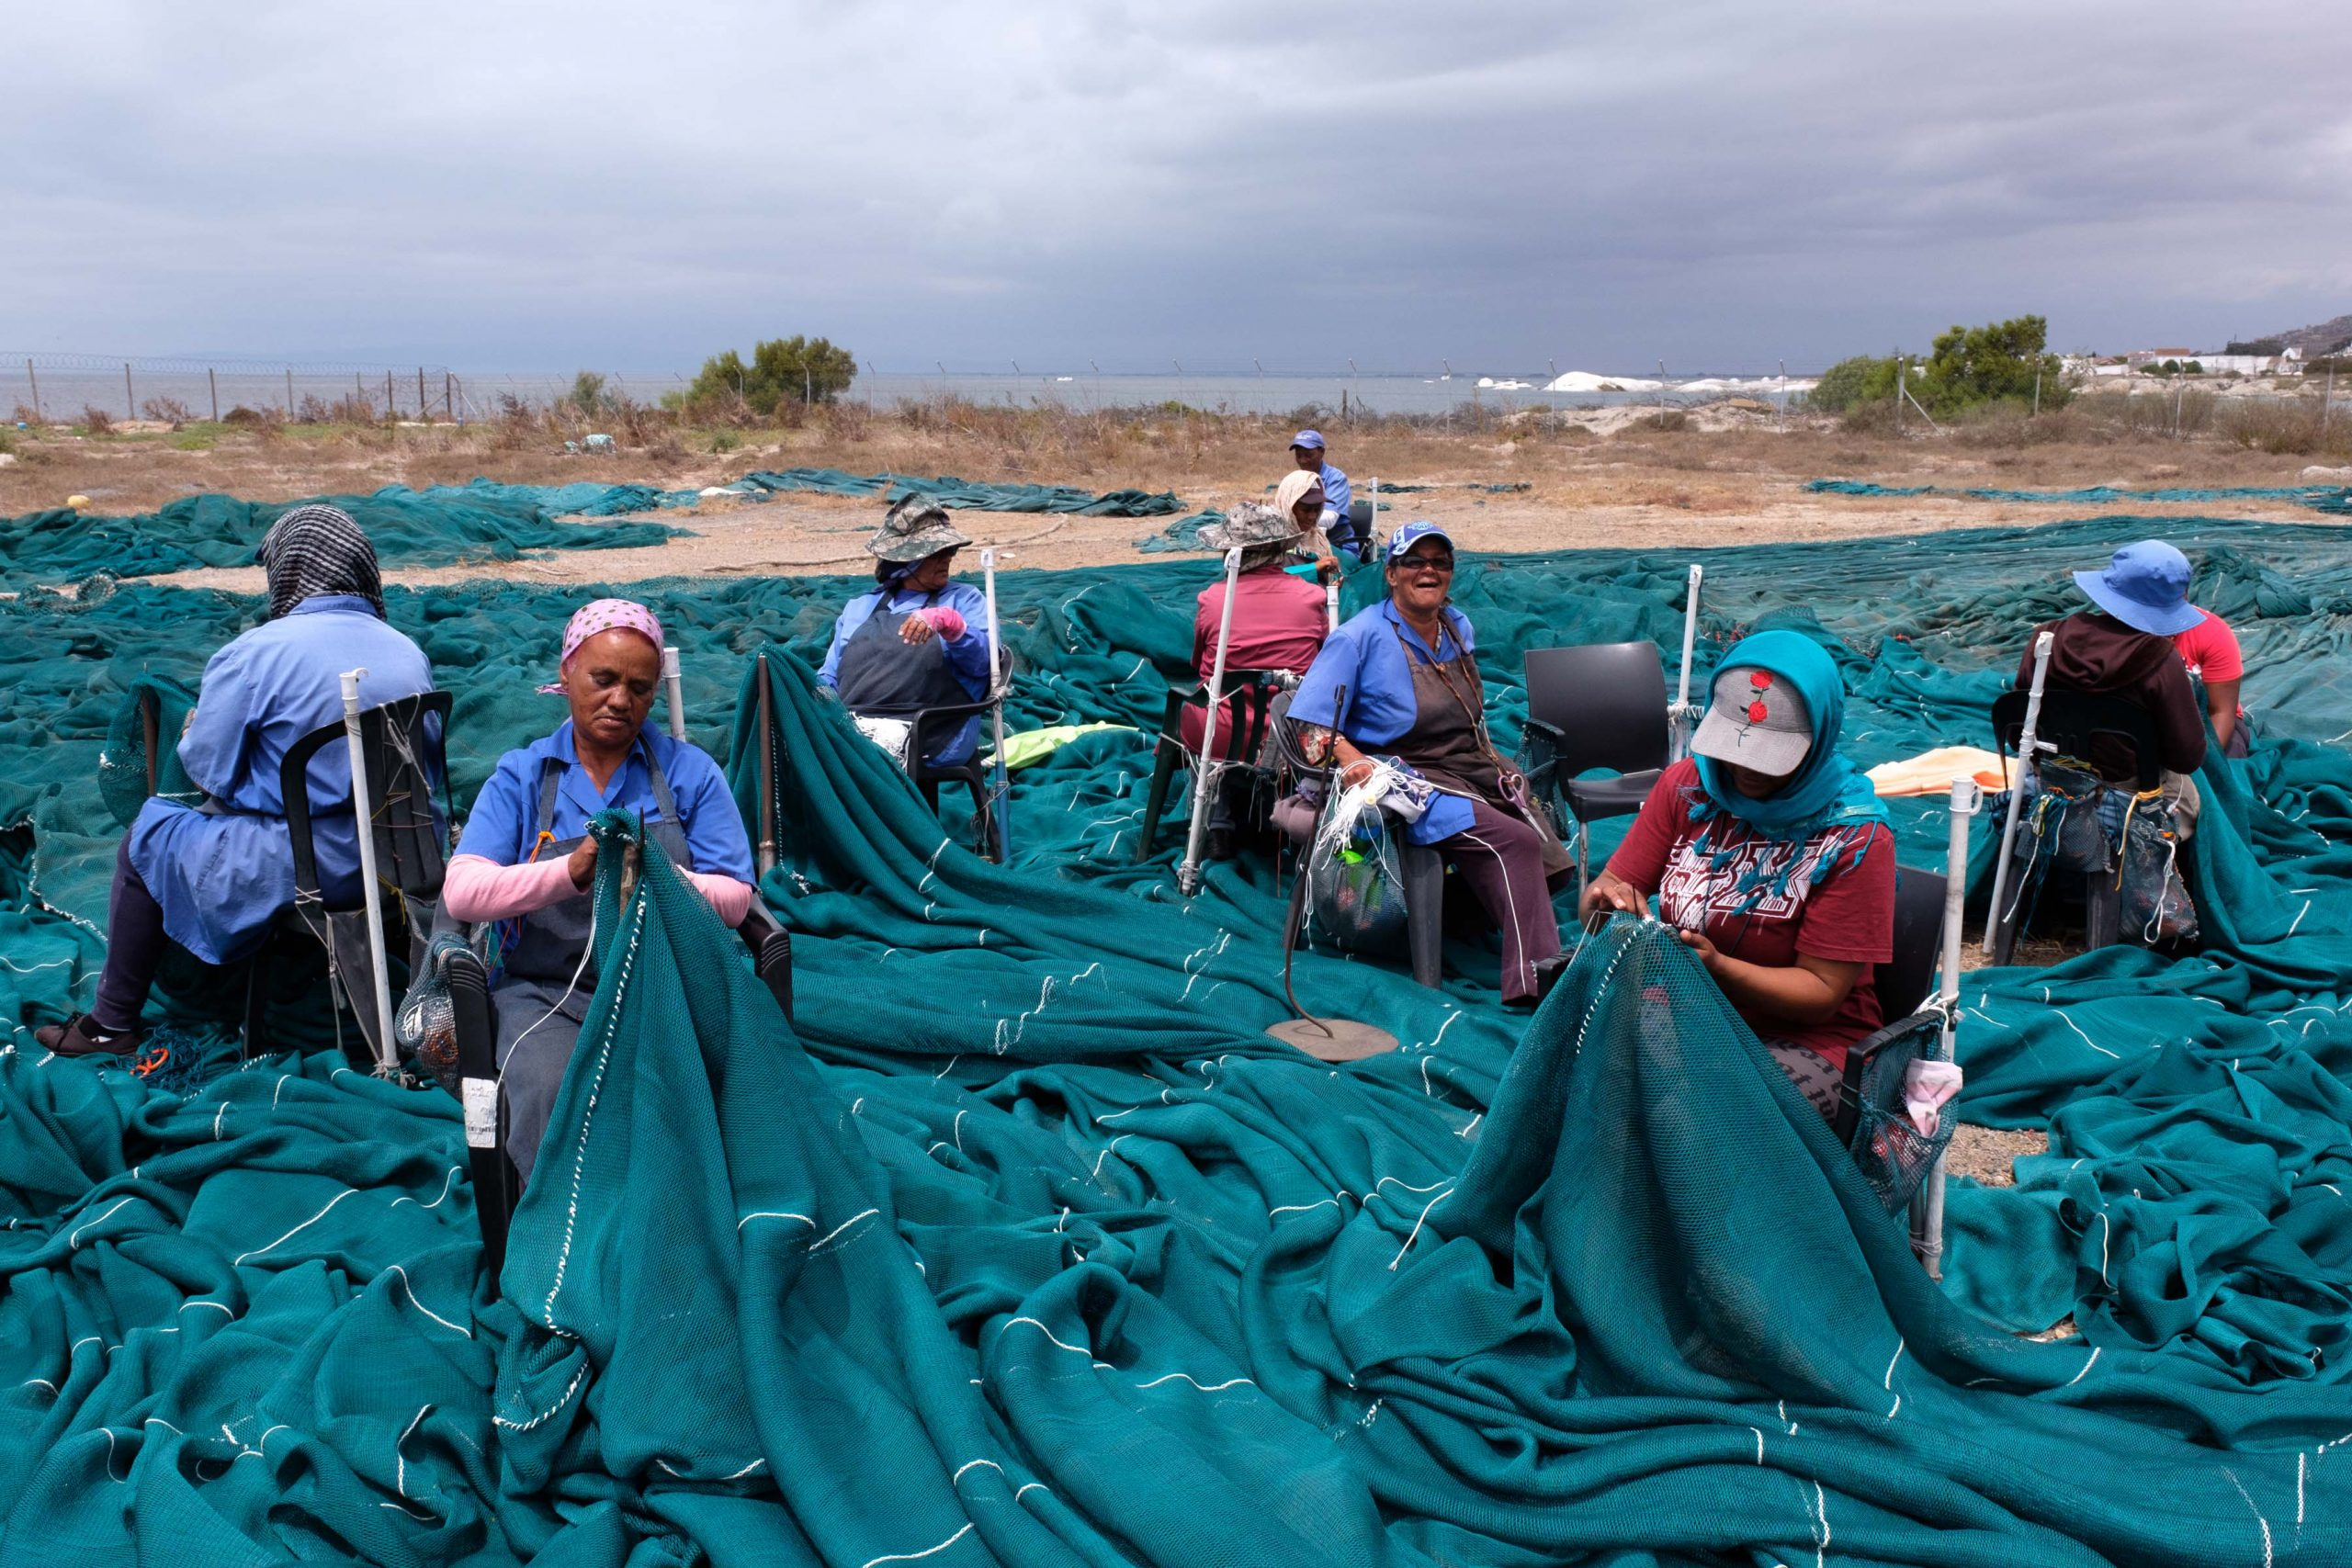 22 January 2020: Women repair the surfaces of the fishing nets while the heavier work of fixing the seams is left to men.